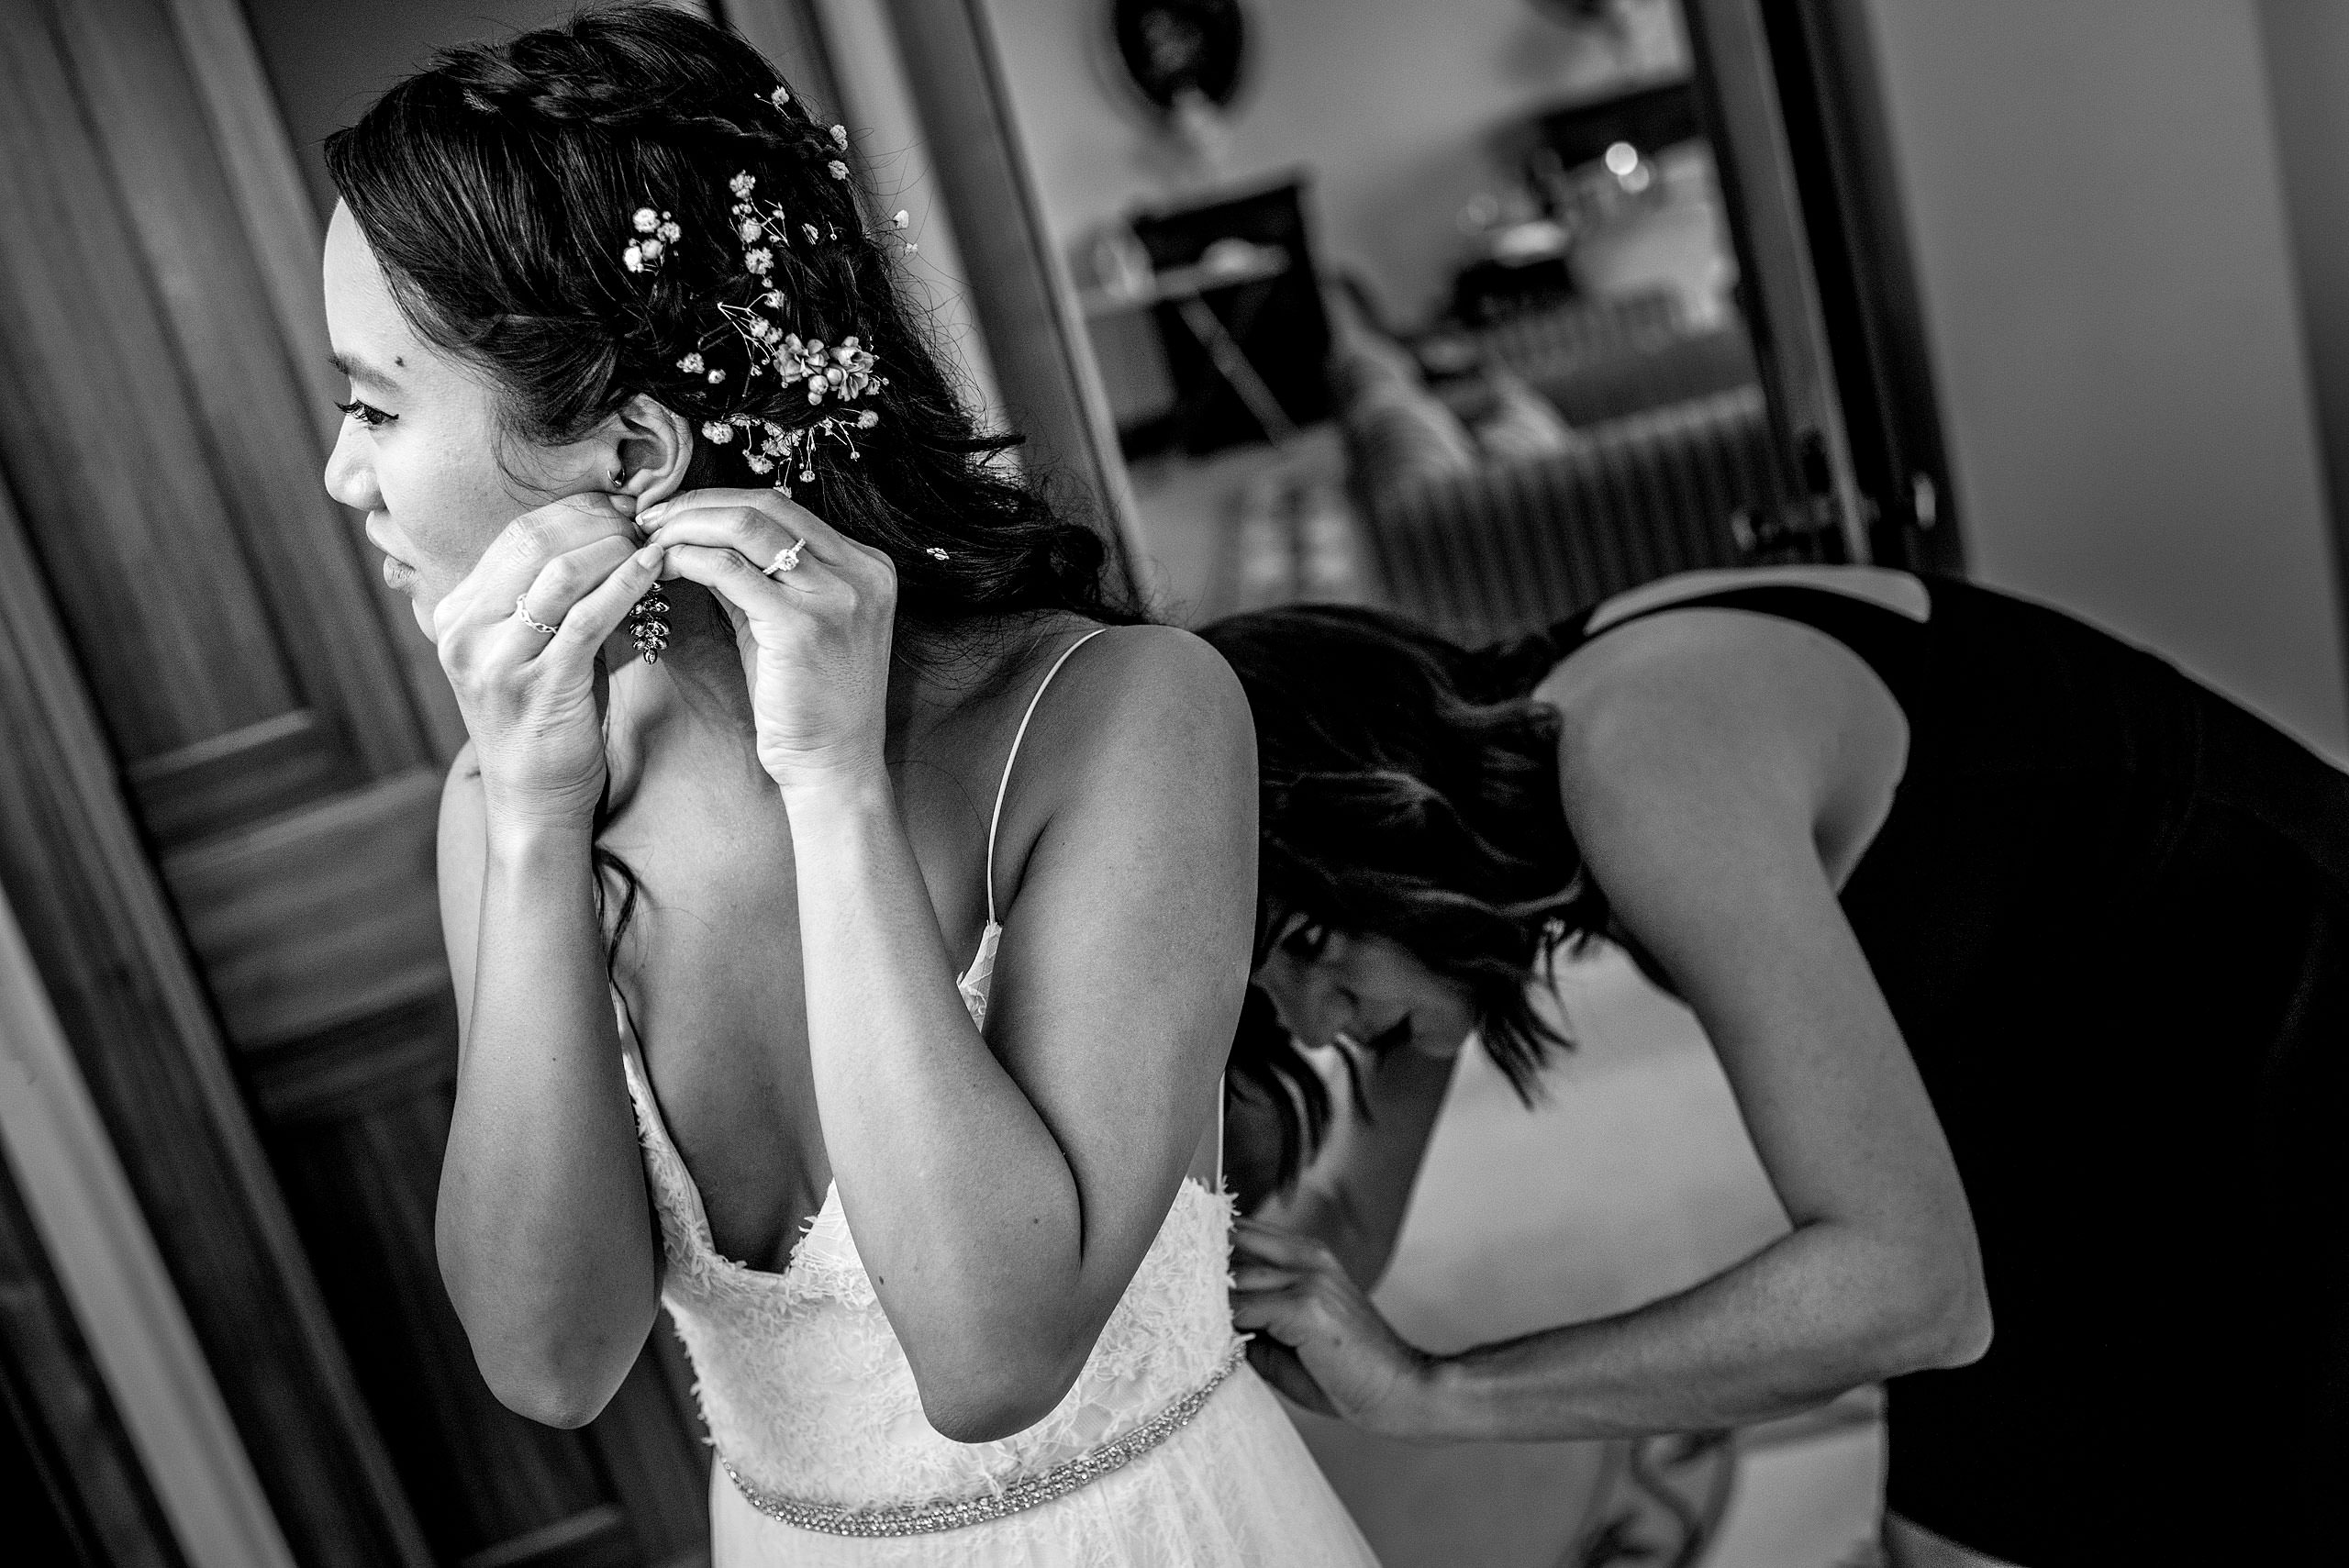 bridesmaid helping a bride with her dress at castillo hotel son vida destination wedding by sean leblanc